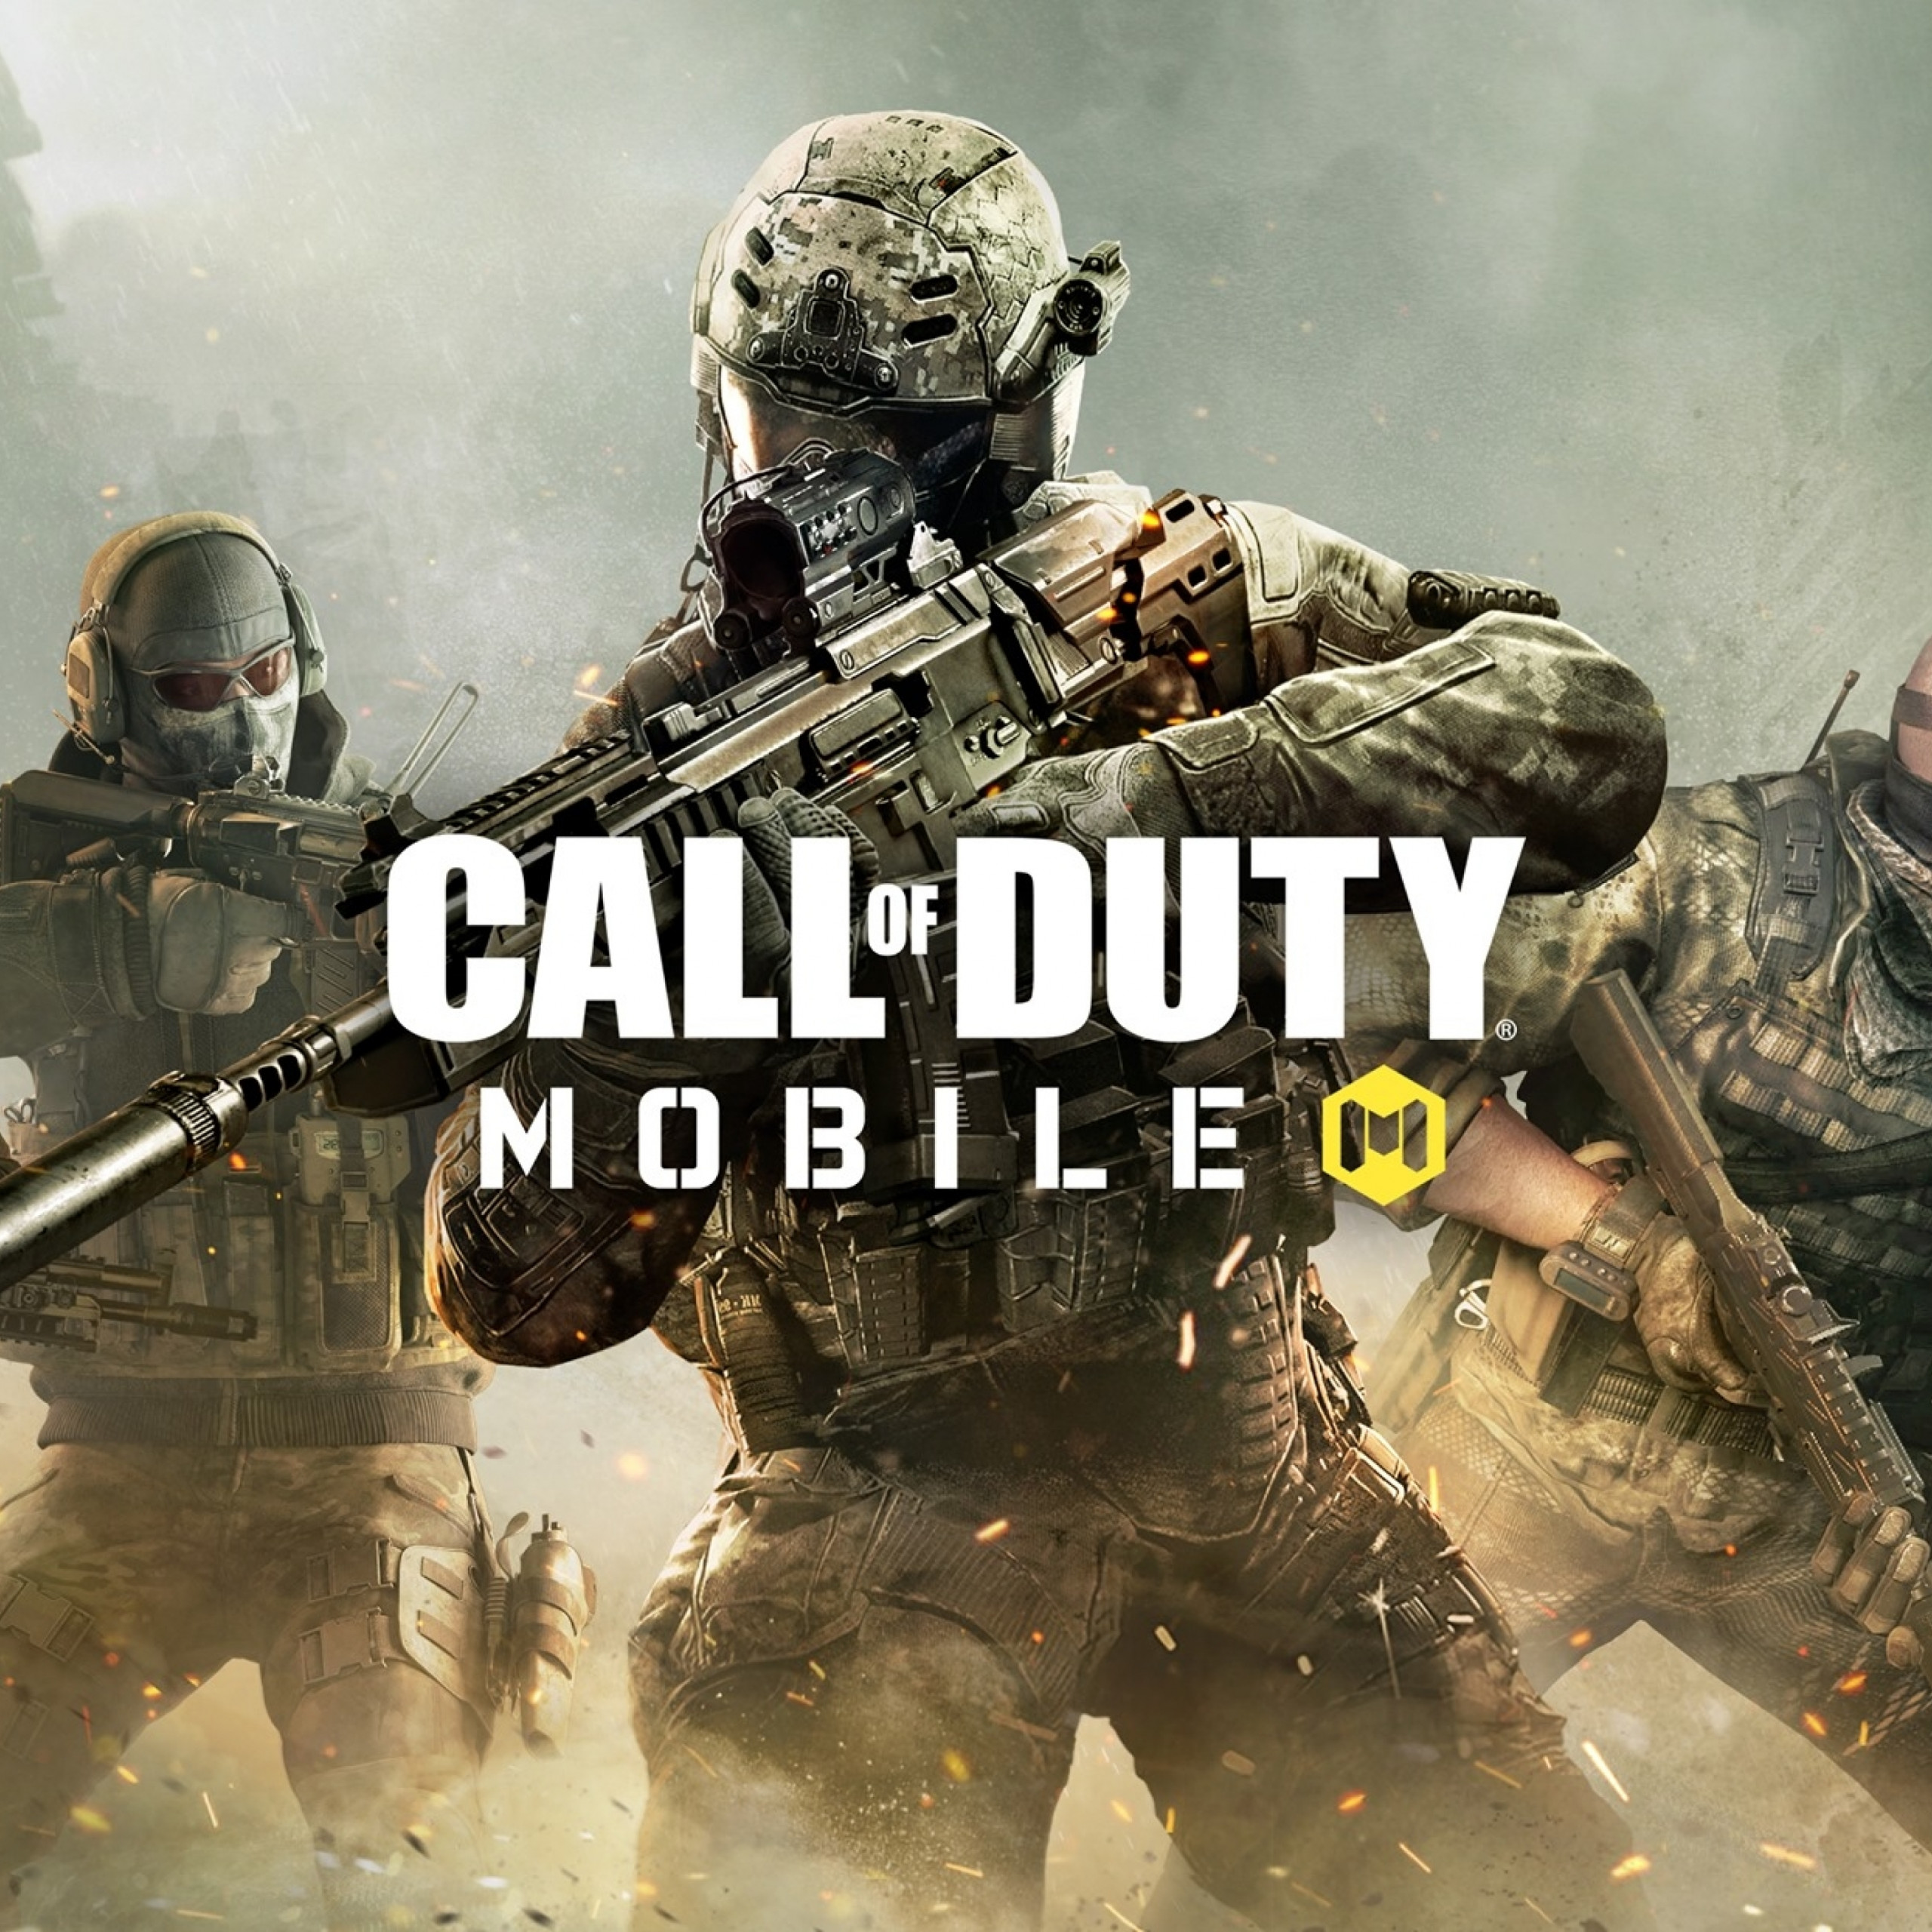 iTwxToh call of duty wallpaper hd